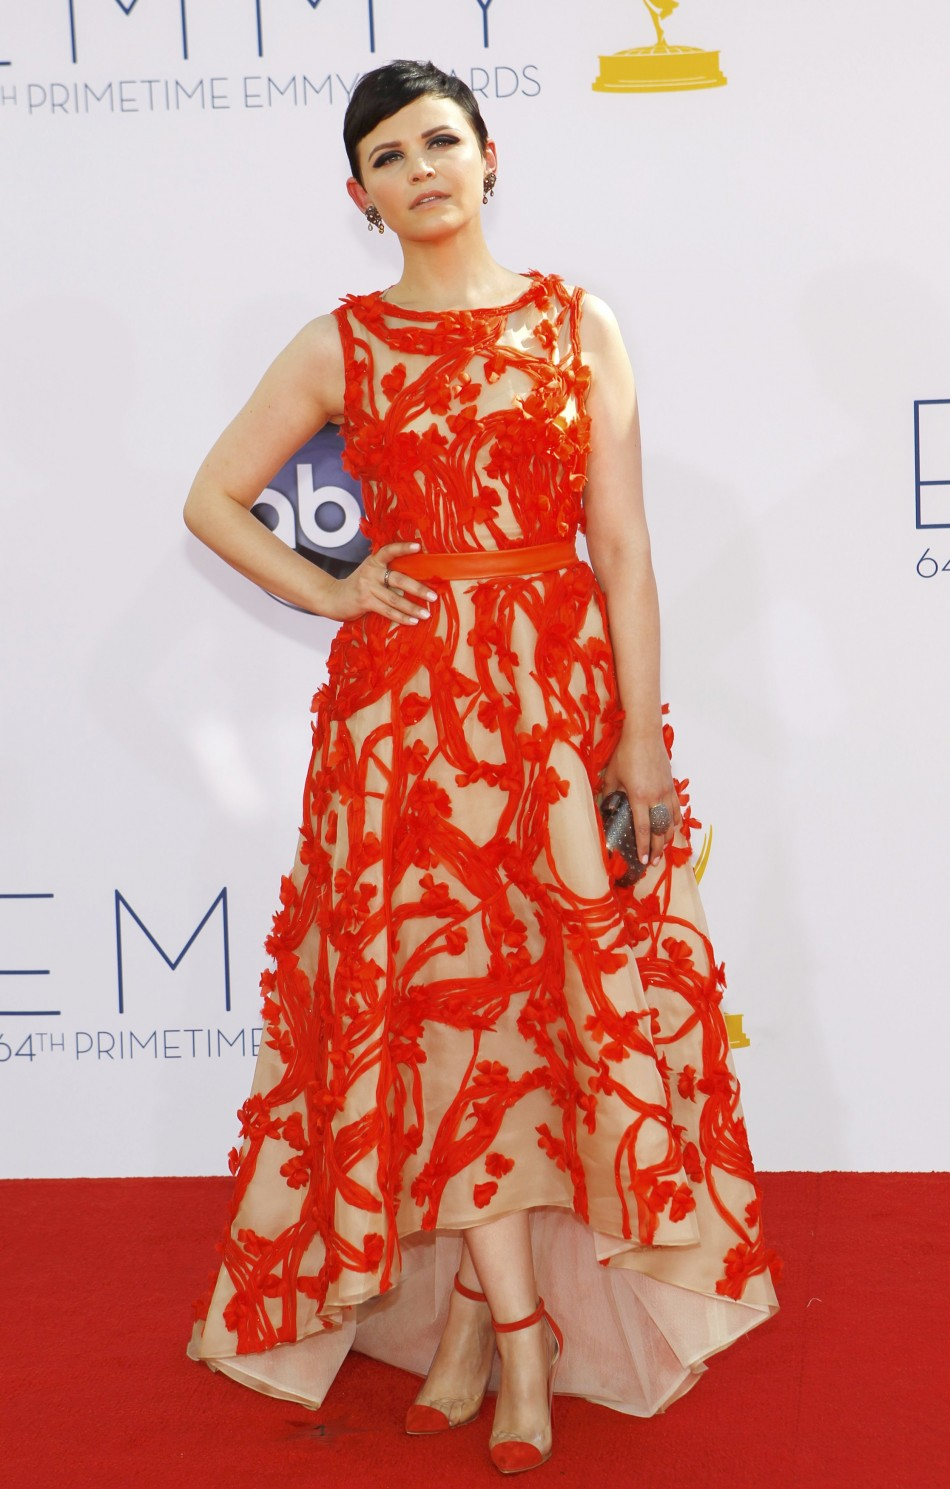 Actress Ginnifer Goodwin, of the drama series Once Upon A Time, arrives at the 64th Primetime Emmy Awards in Los Angeles